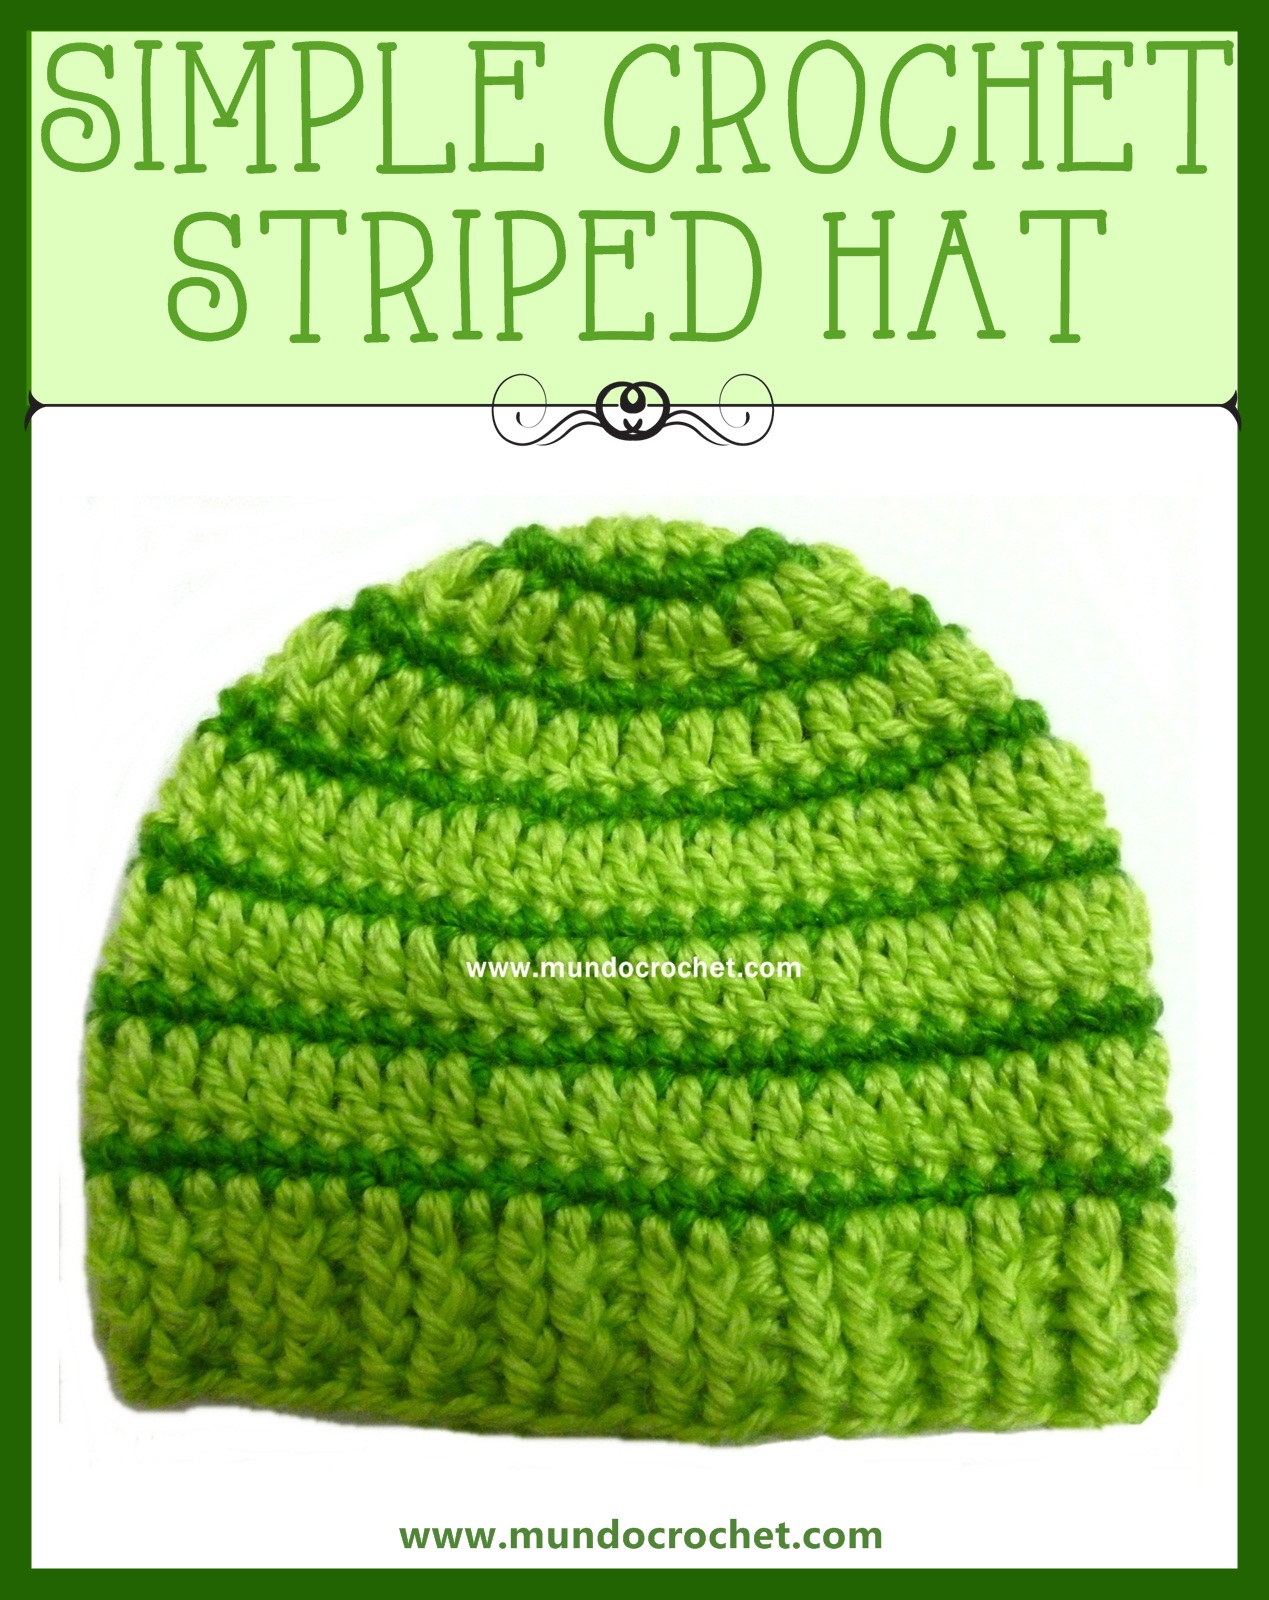 Crochet striped hat for baby